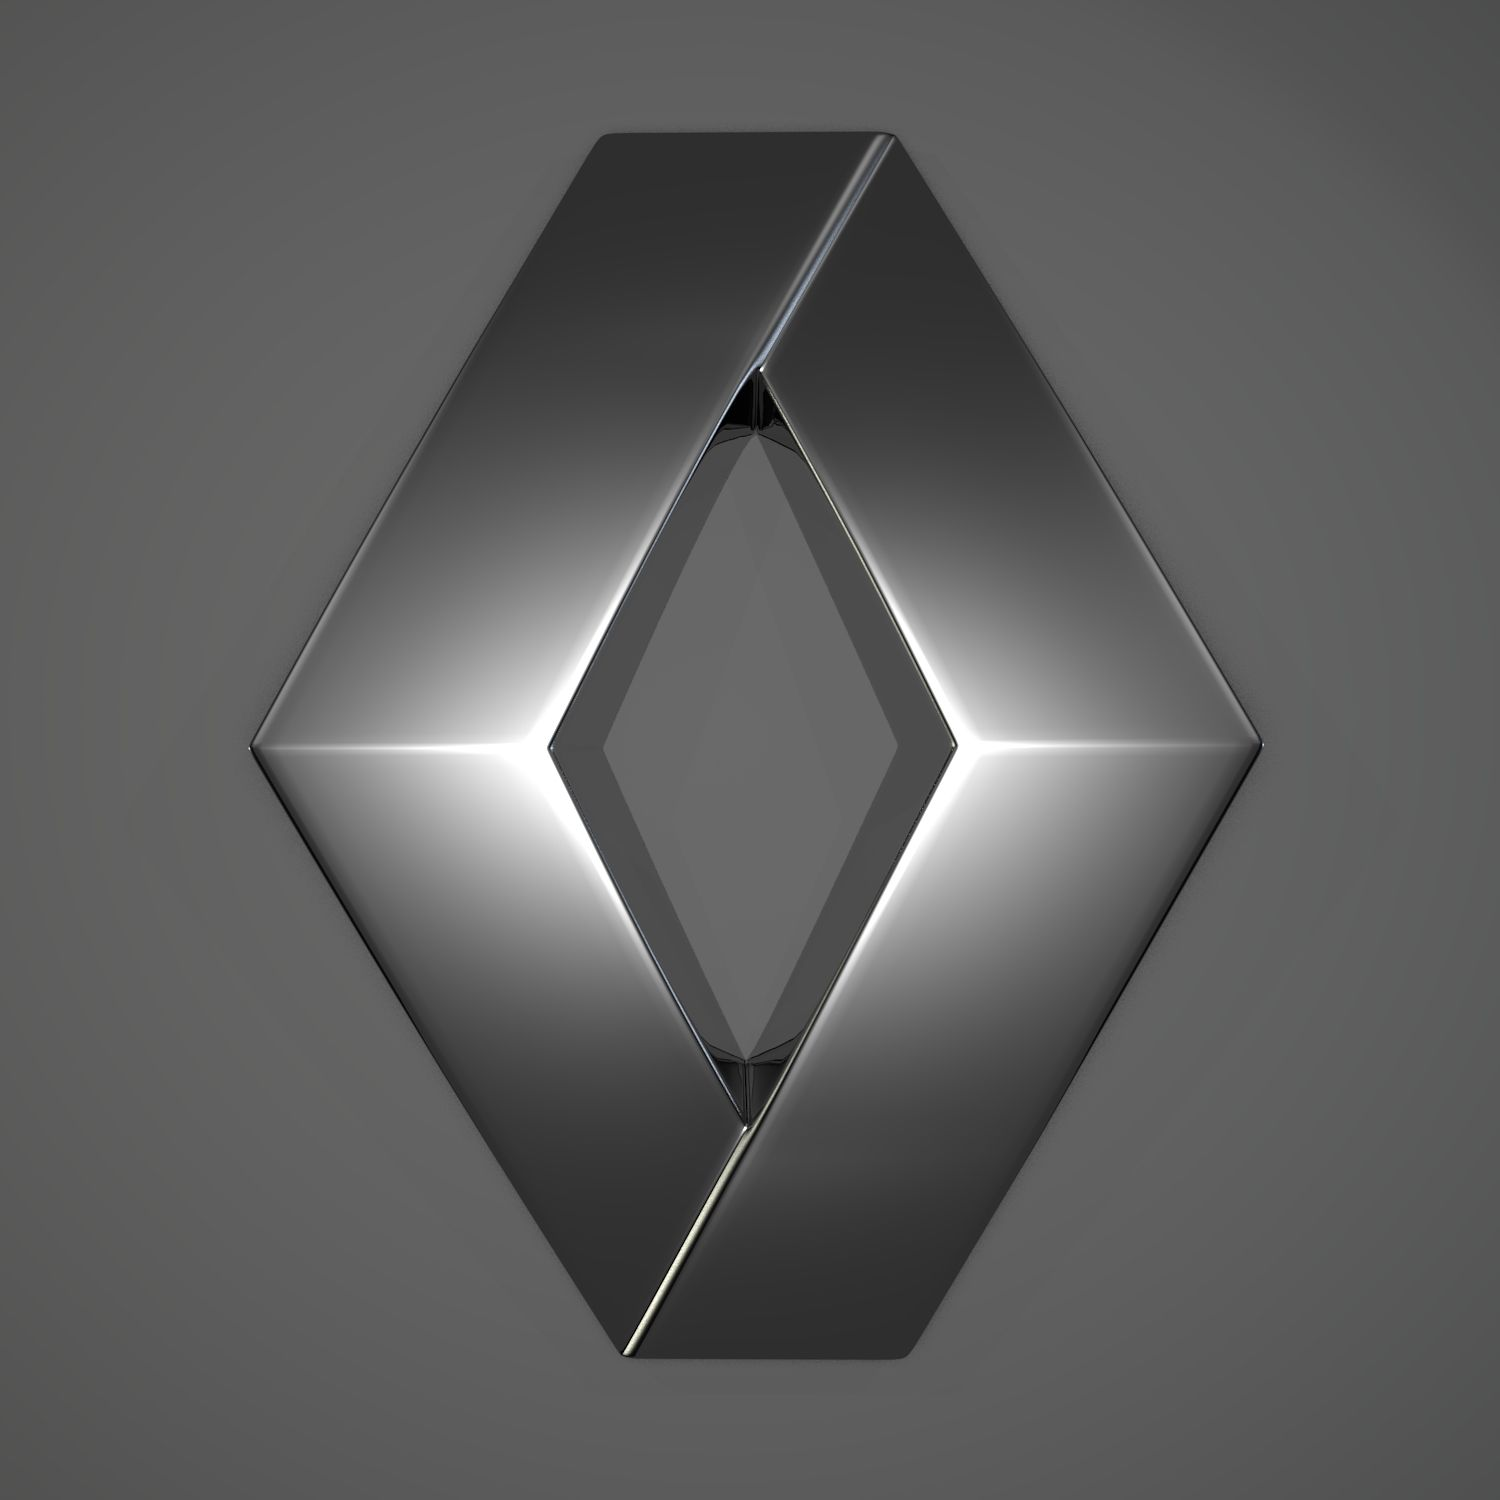 Silver Car Logo - Renault Logo, Renault Car Symbol Meaning and History | Car Brand ...